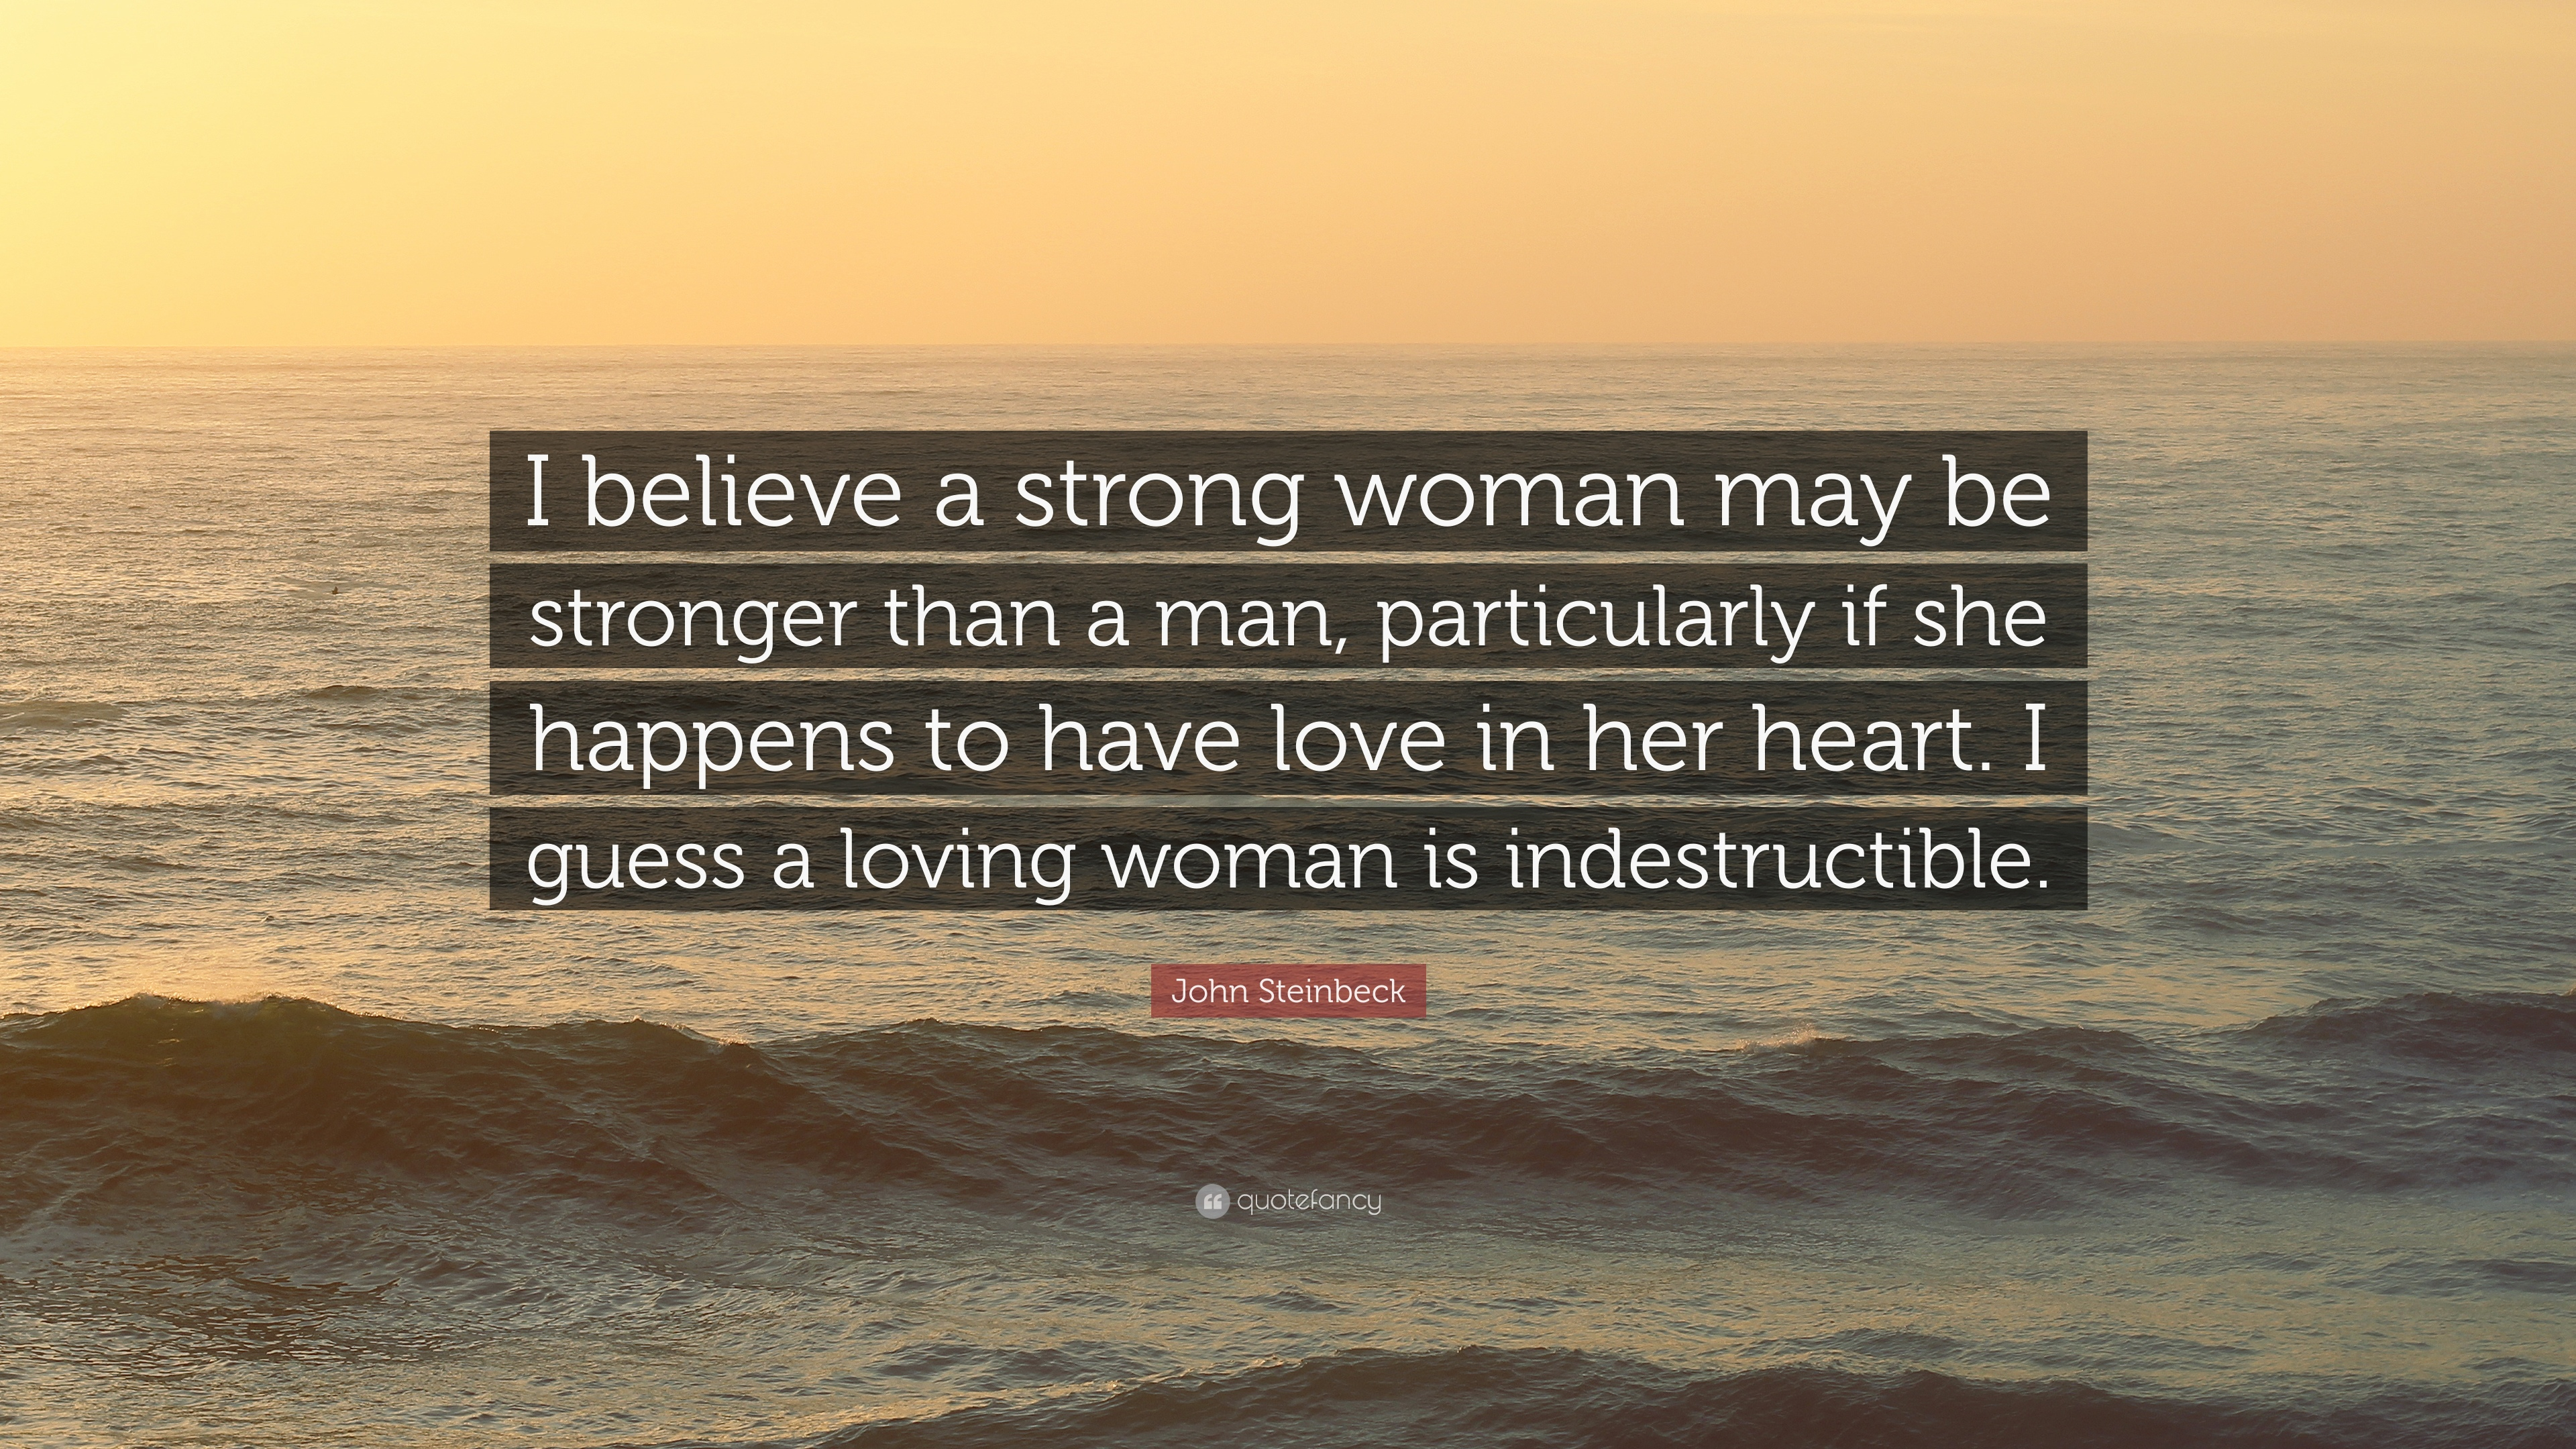 John steinbeck quote i believe a strong woman may be stronger than a man